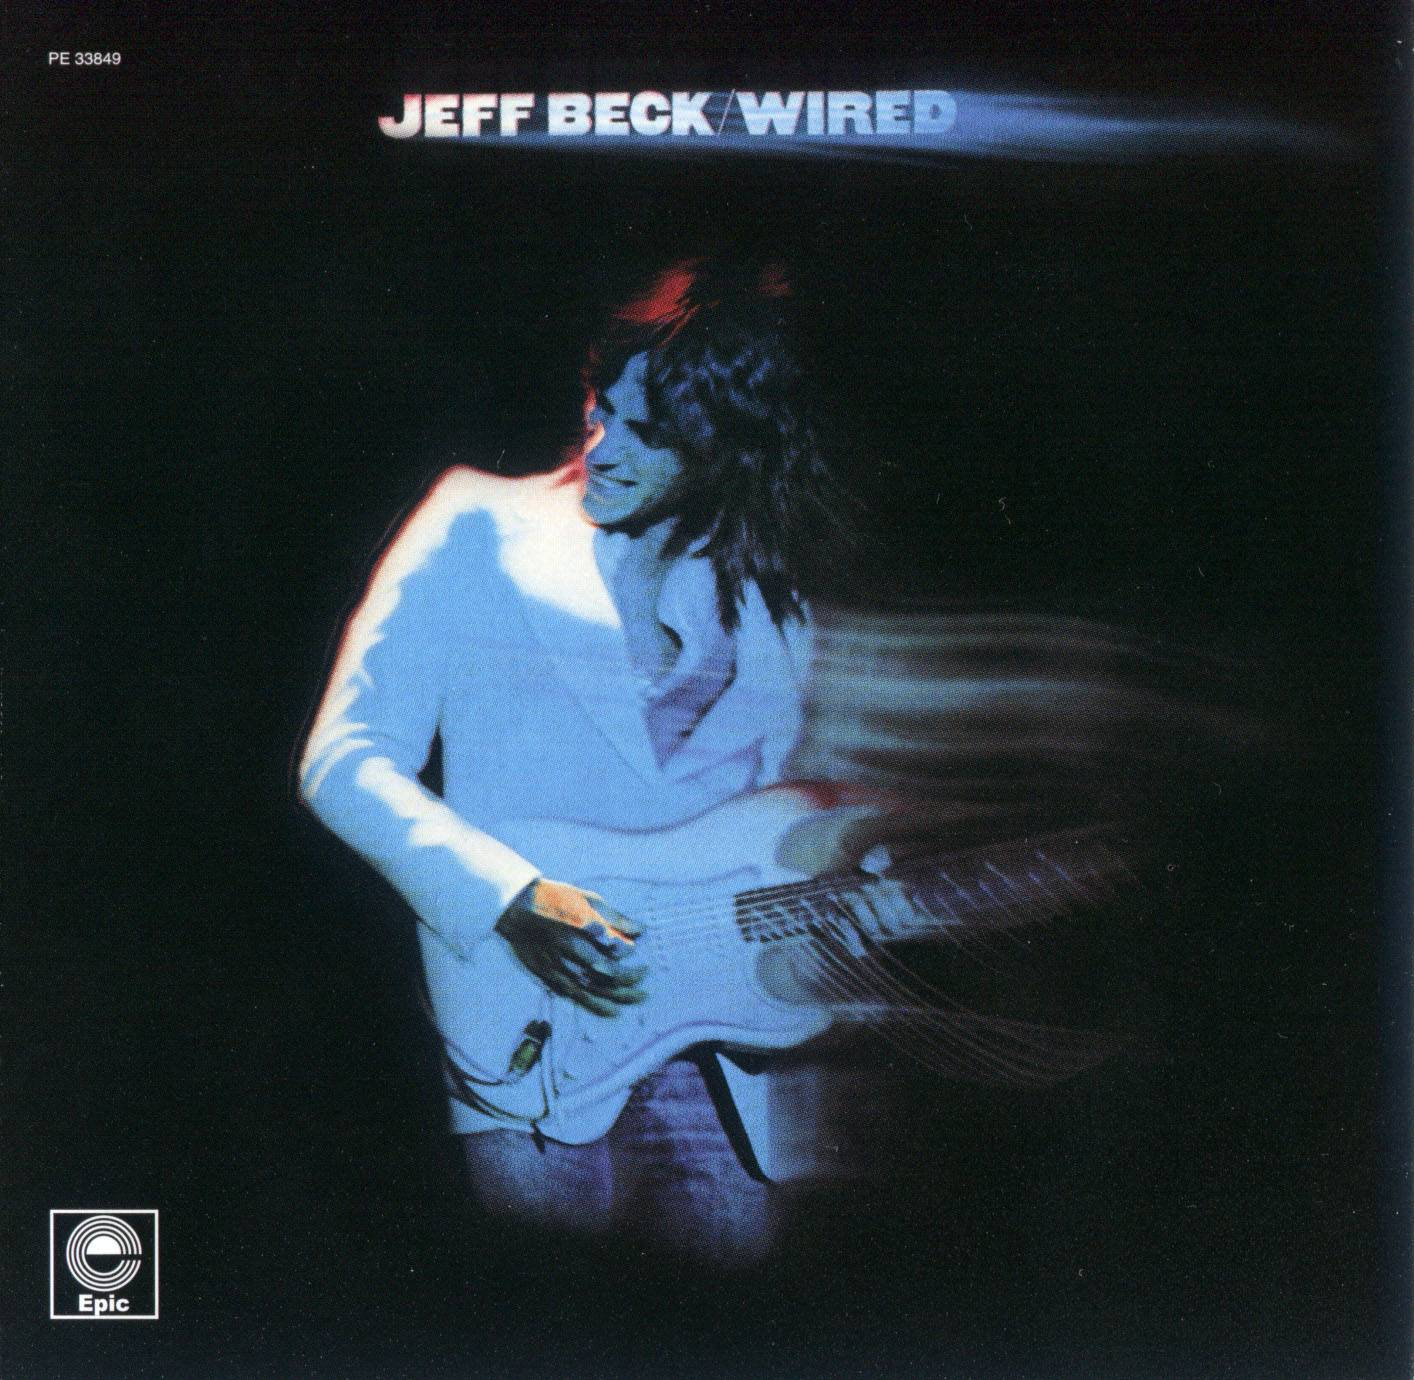 Jeff Beck - Wired (1976) [Analogue Productions, Remastered 2016] Audio CD Layer